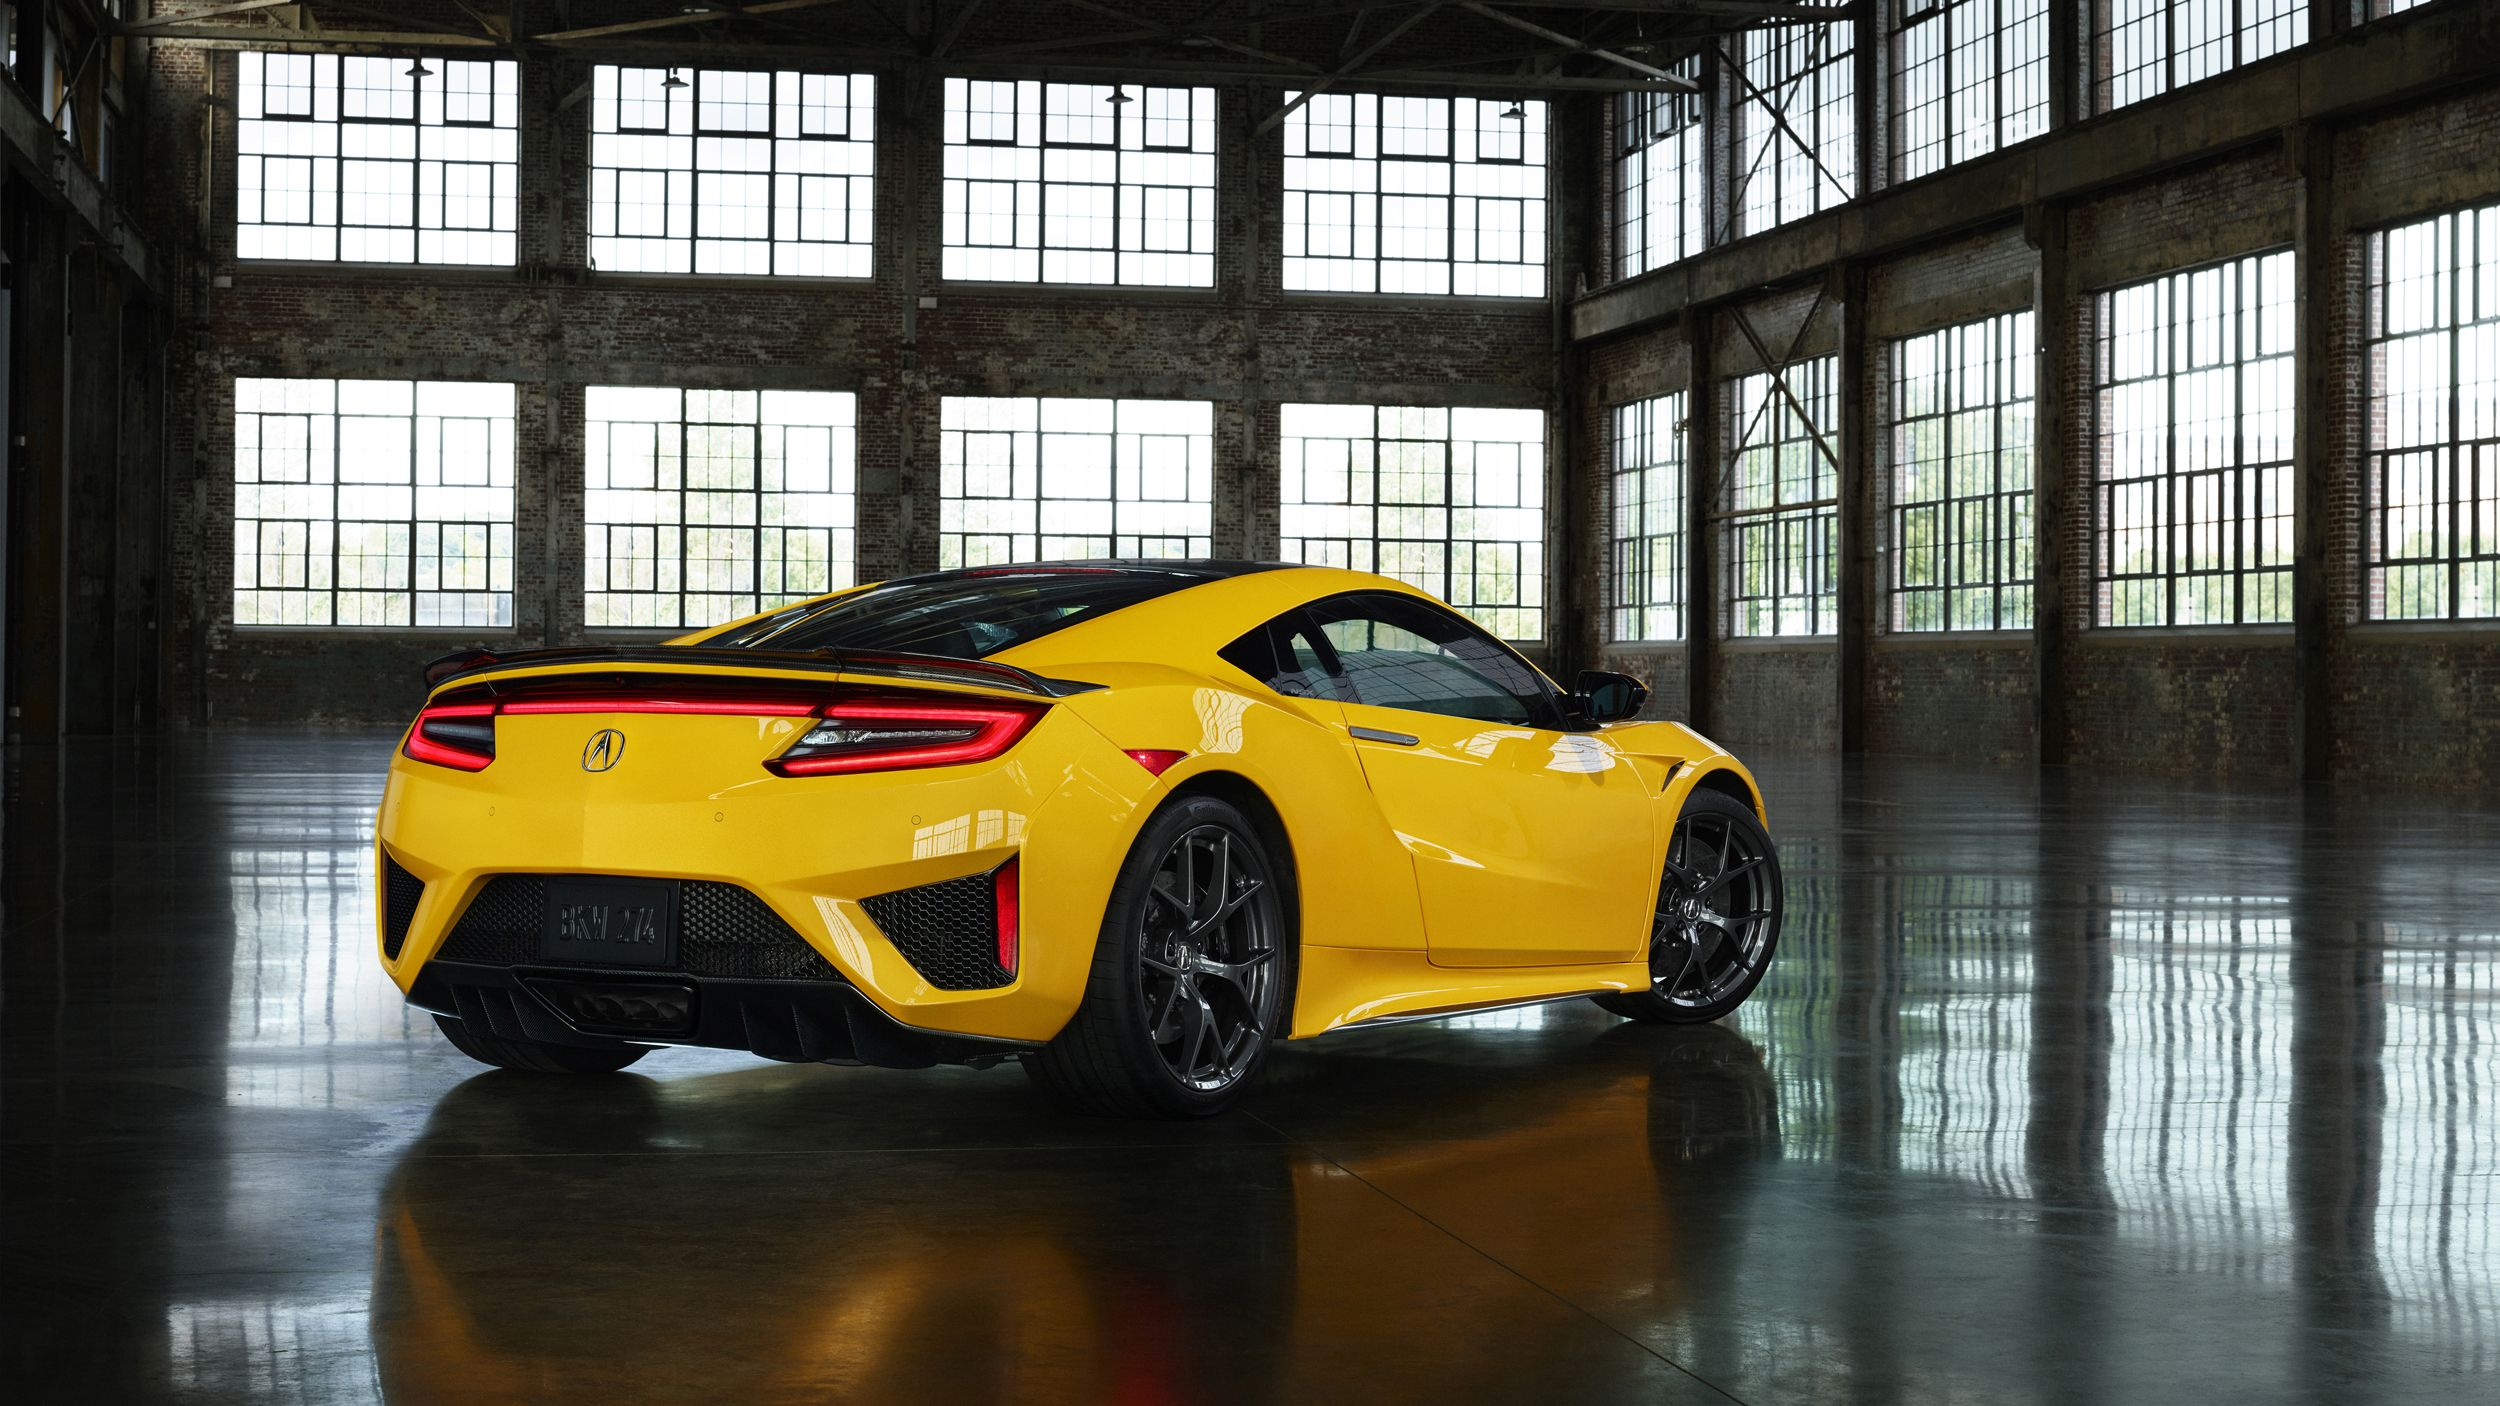 2020 Acura NSX Indy Yellow Pearl Acura nsx, Nsx, Acura